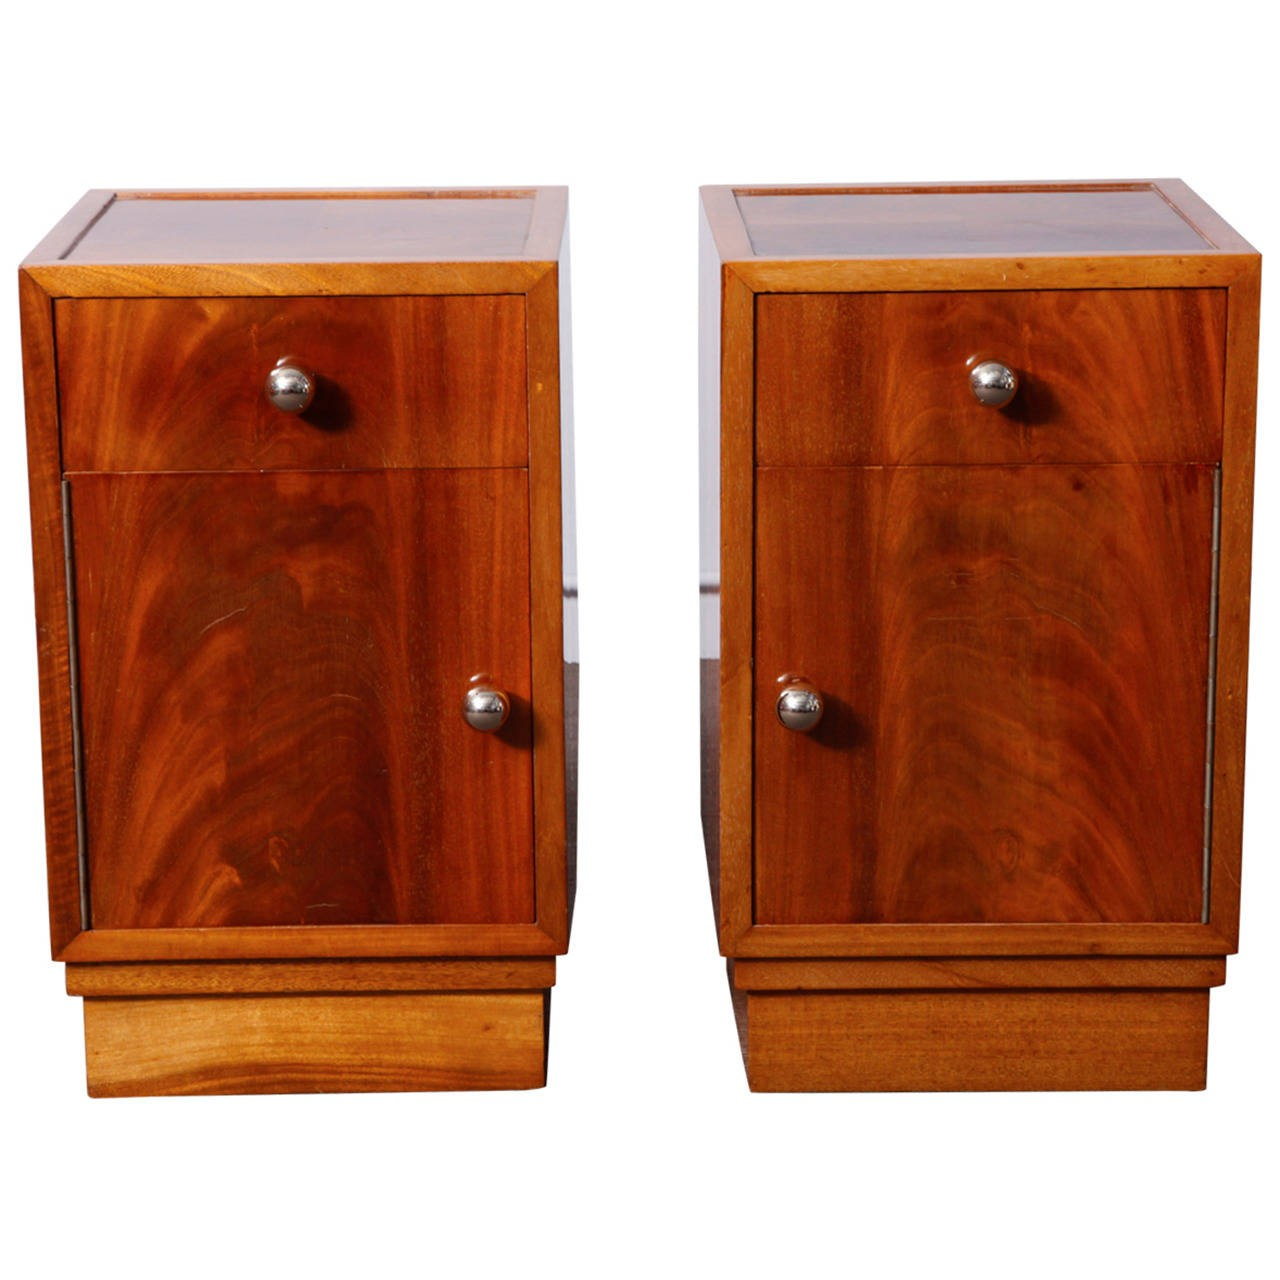 Pair of art deco night stands